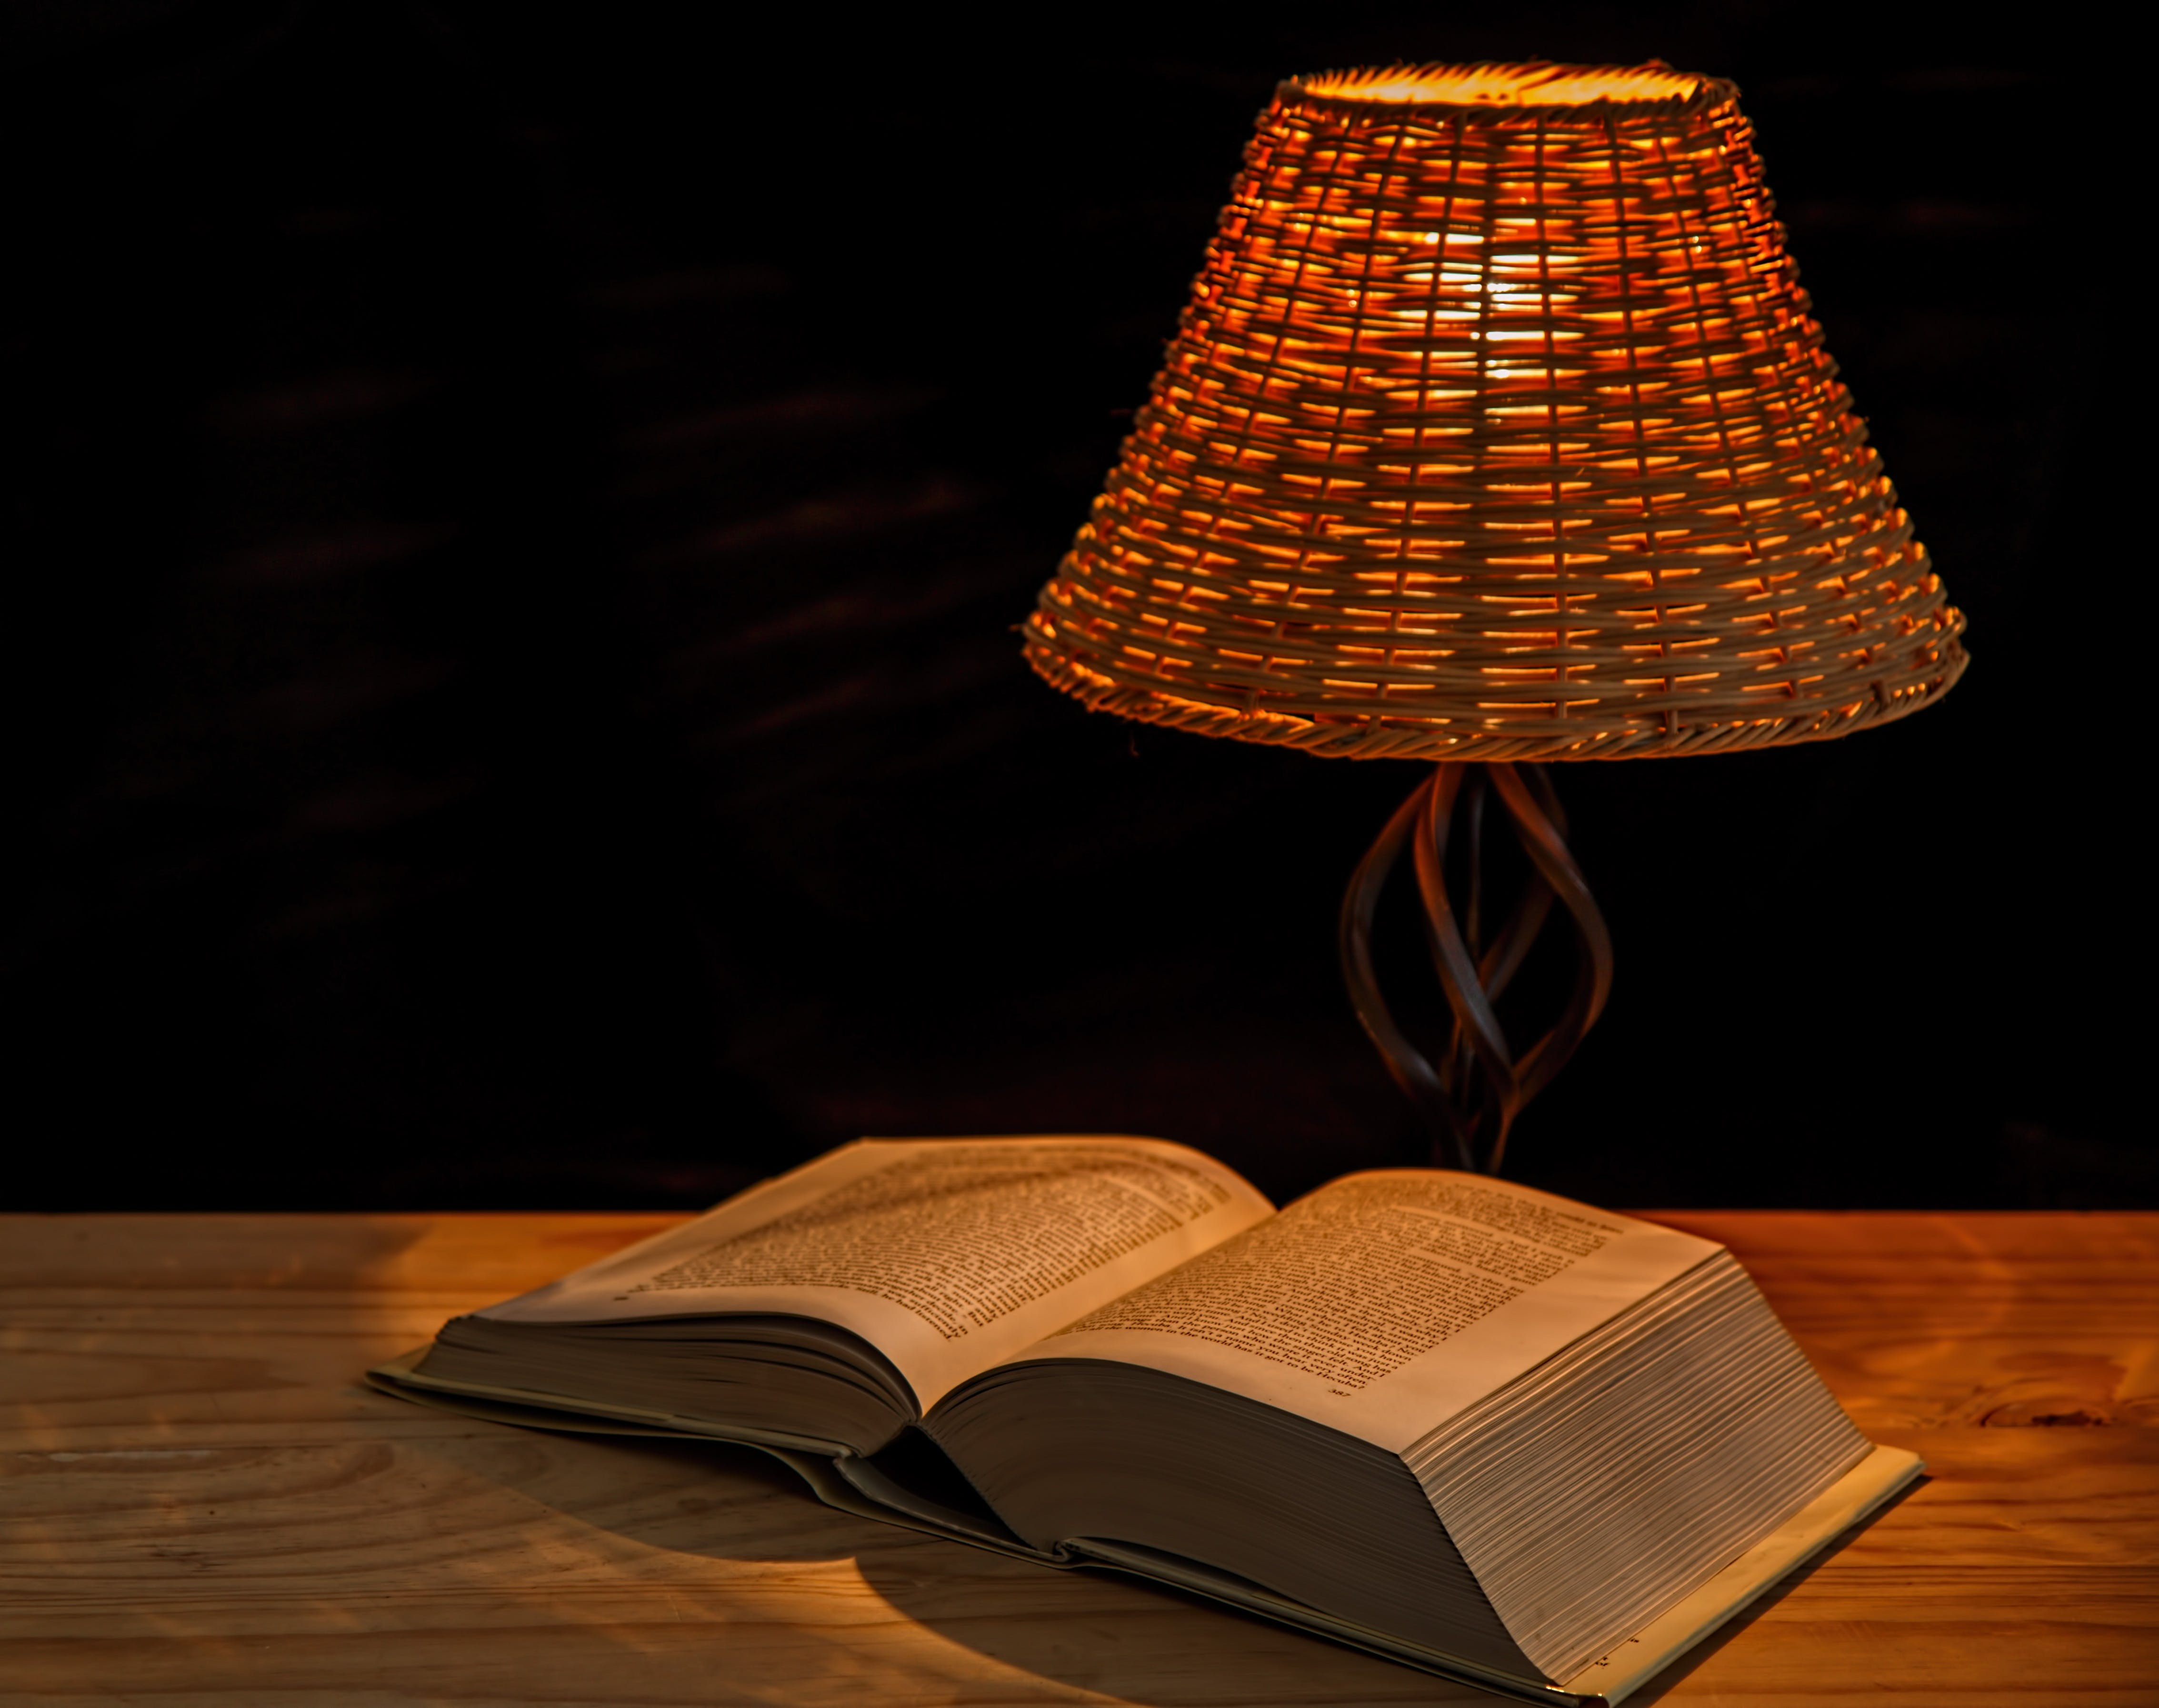 Book Beside Table Lamp